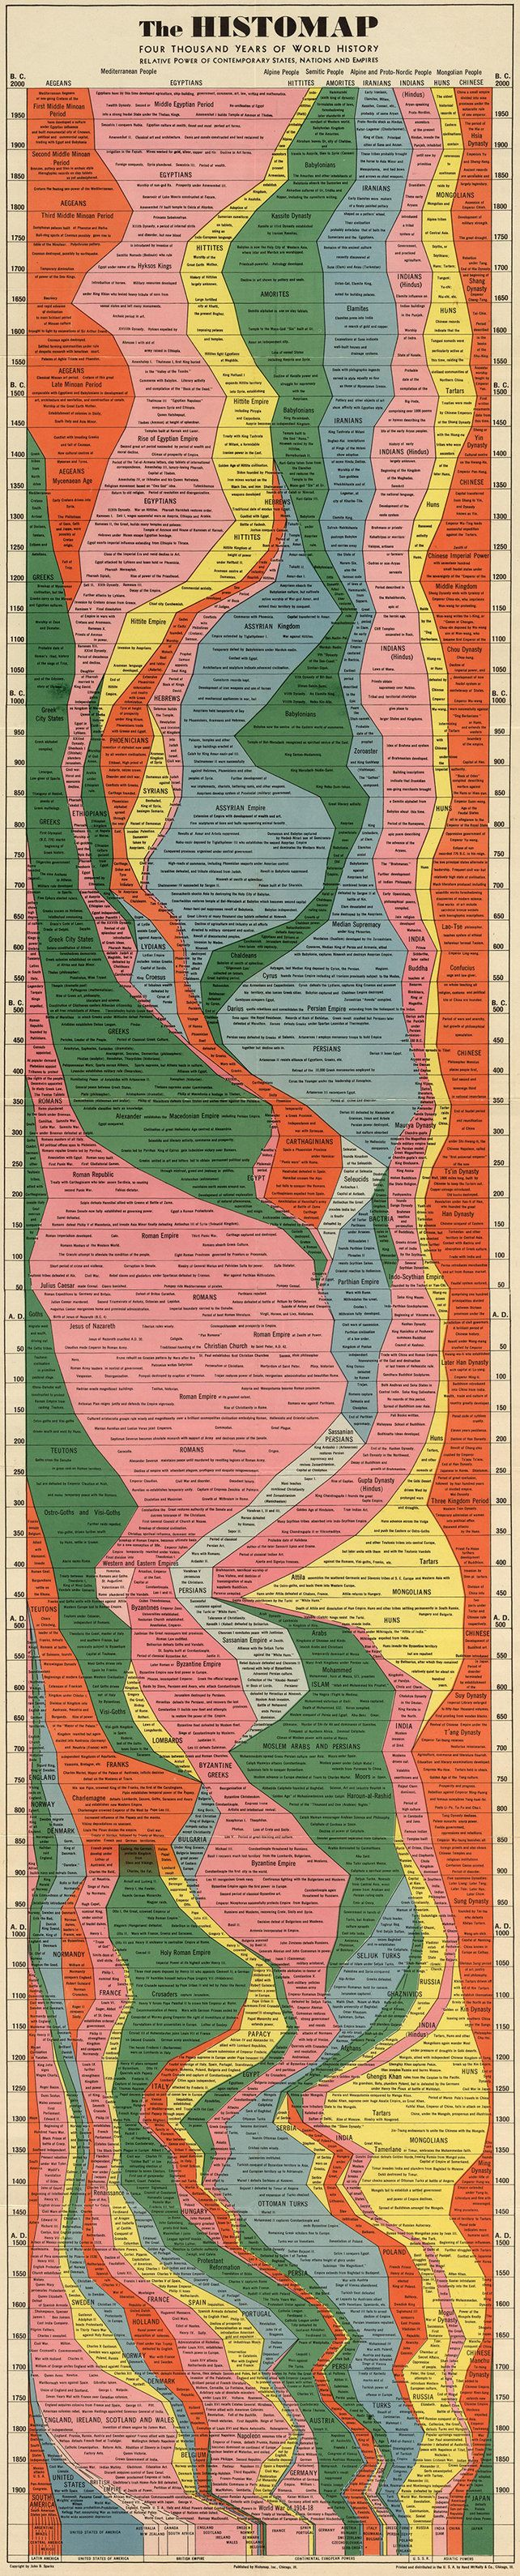 Infographic: 4,000 Years Of Human History Captured In One Retro Chart | Co.Design | business + design